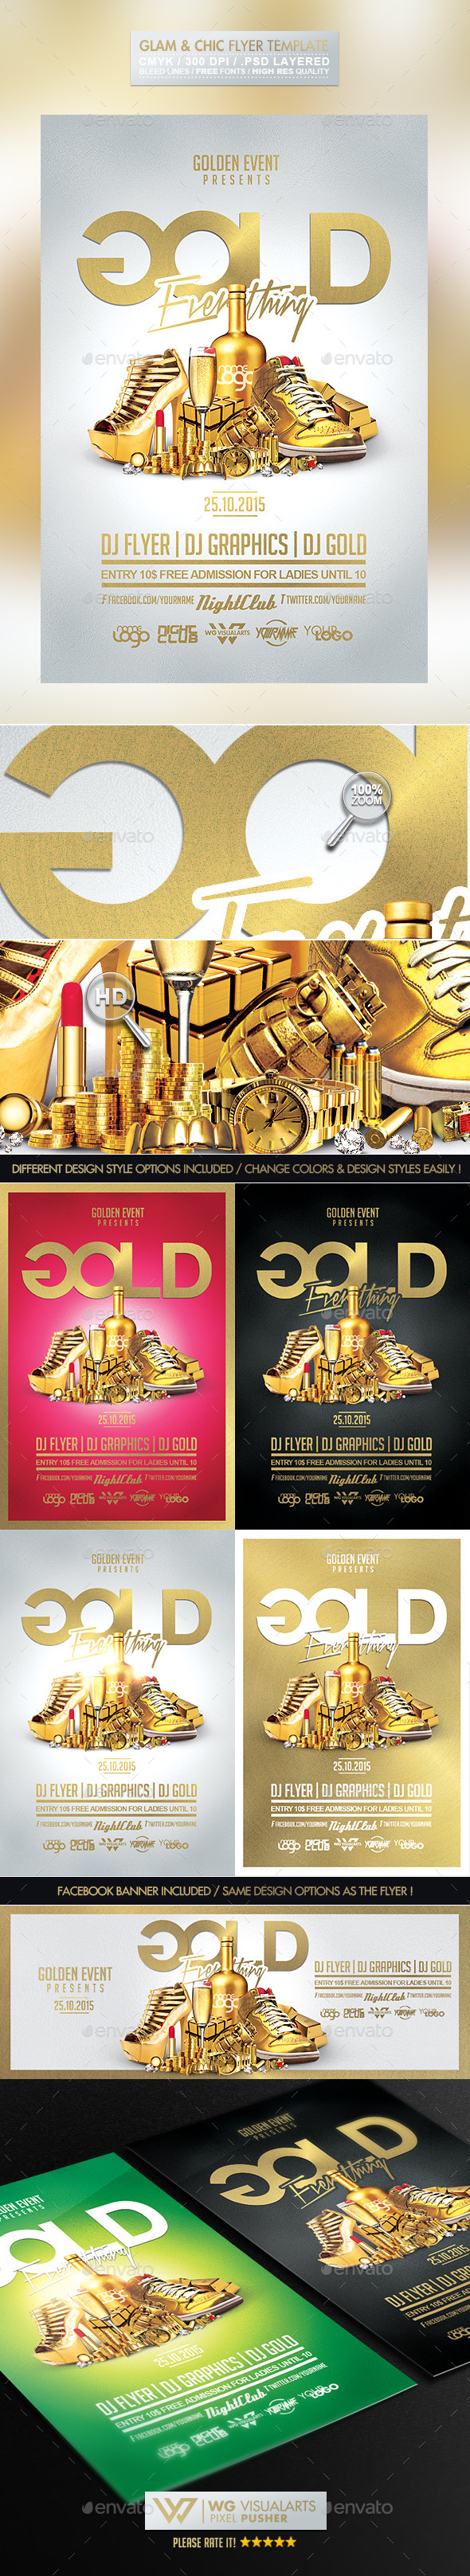 GraphicRiver Gold Bling Bling Flyer Template 10102800